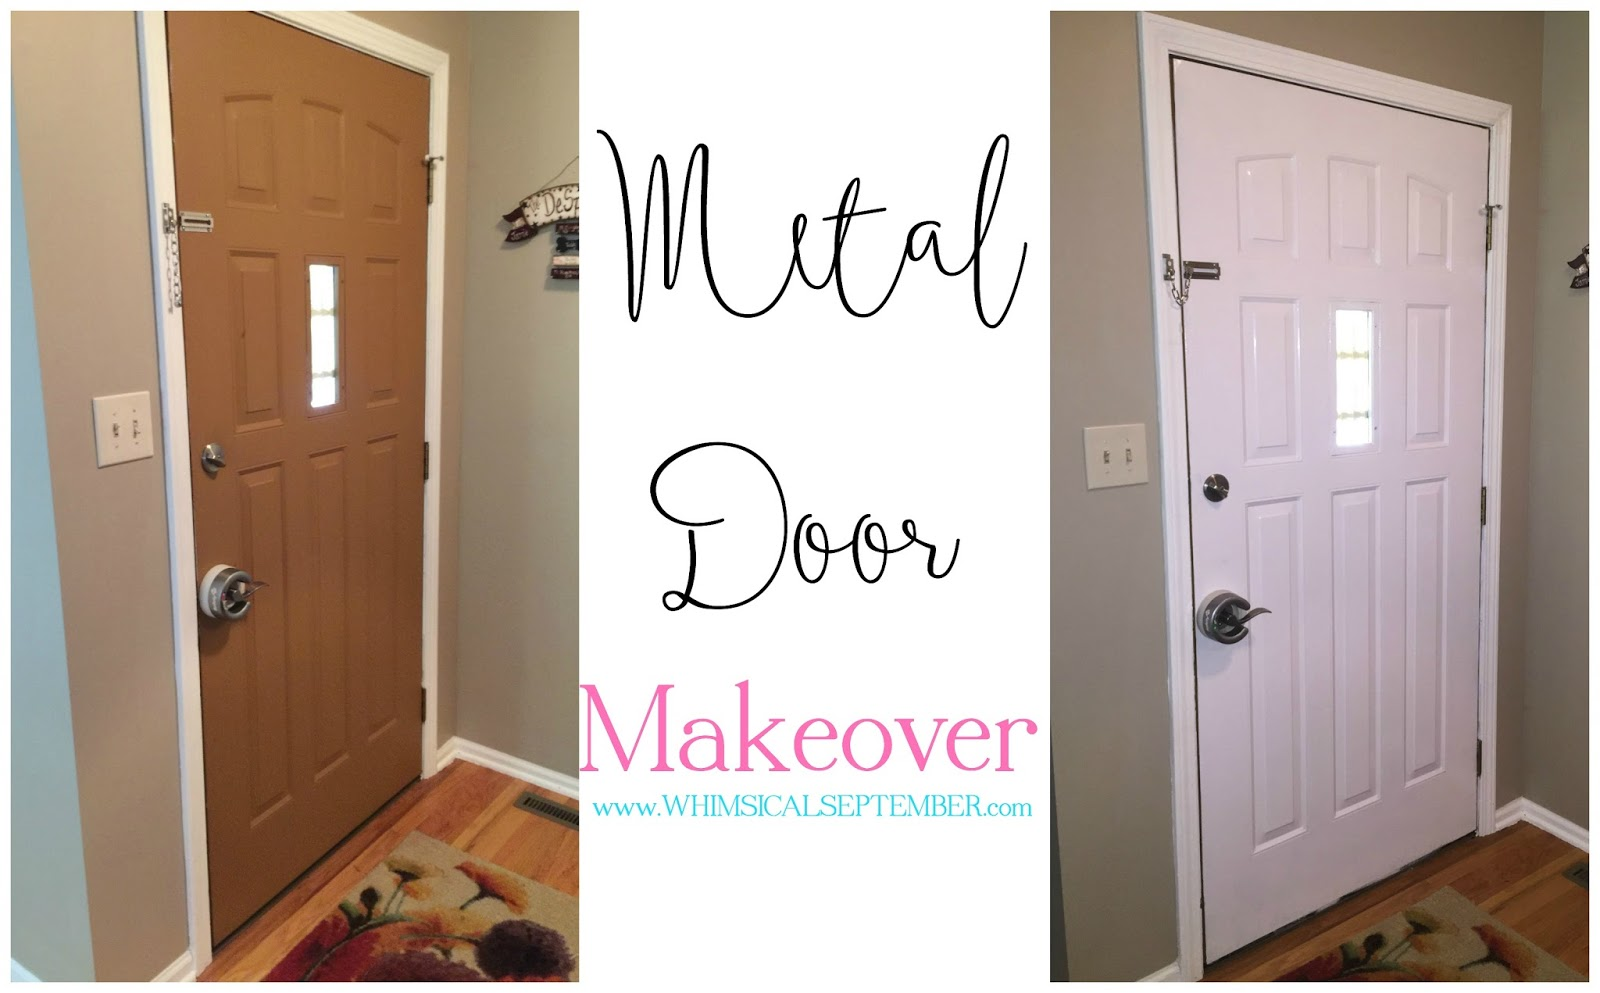 A Metal Door Makeover A Very Naughty Dog And An Ad Space Giveaway Whimsical September